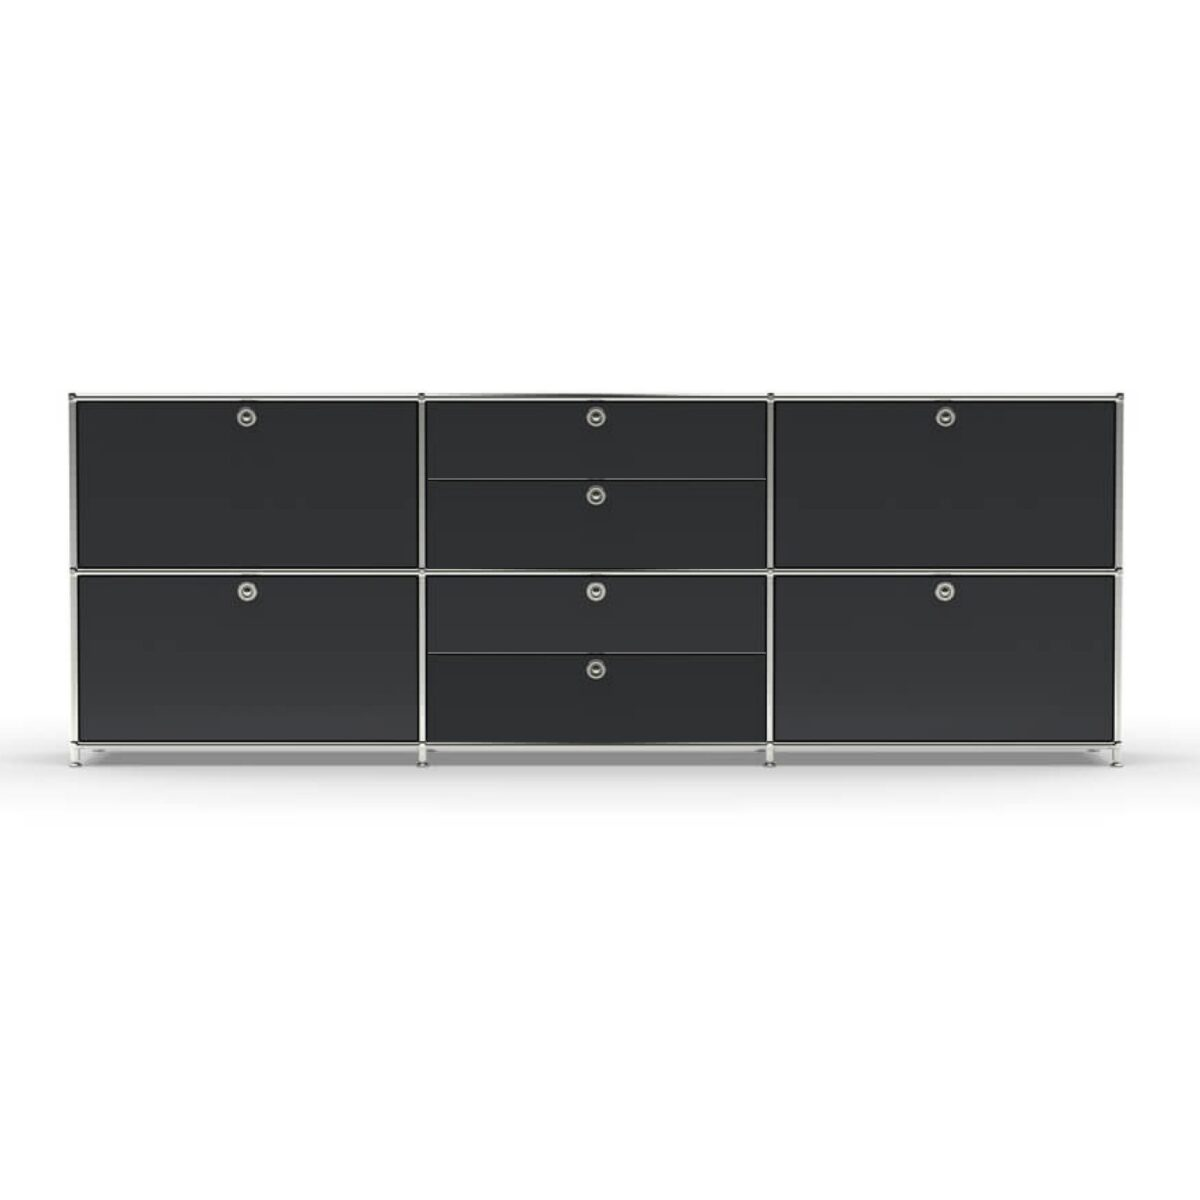 Chrom- Glas Regale Design Sideboard T32